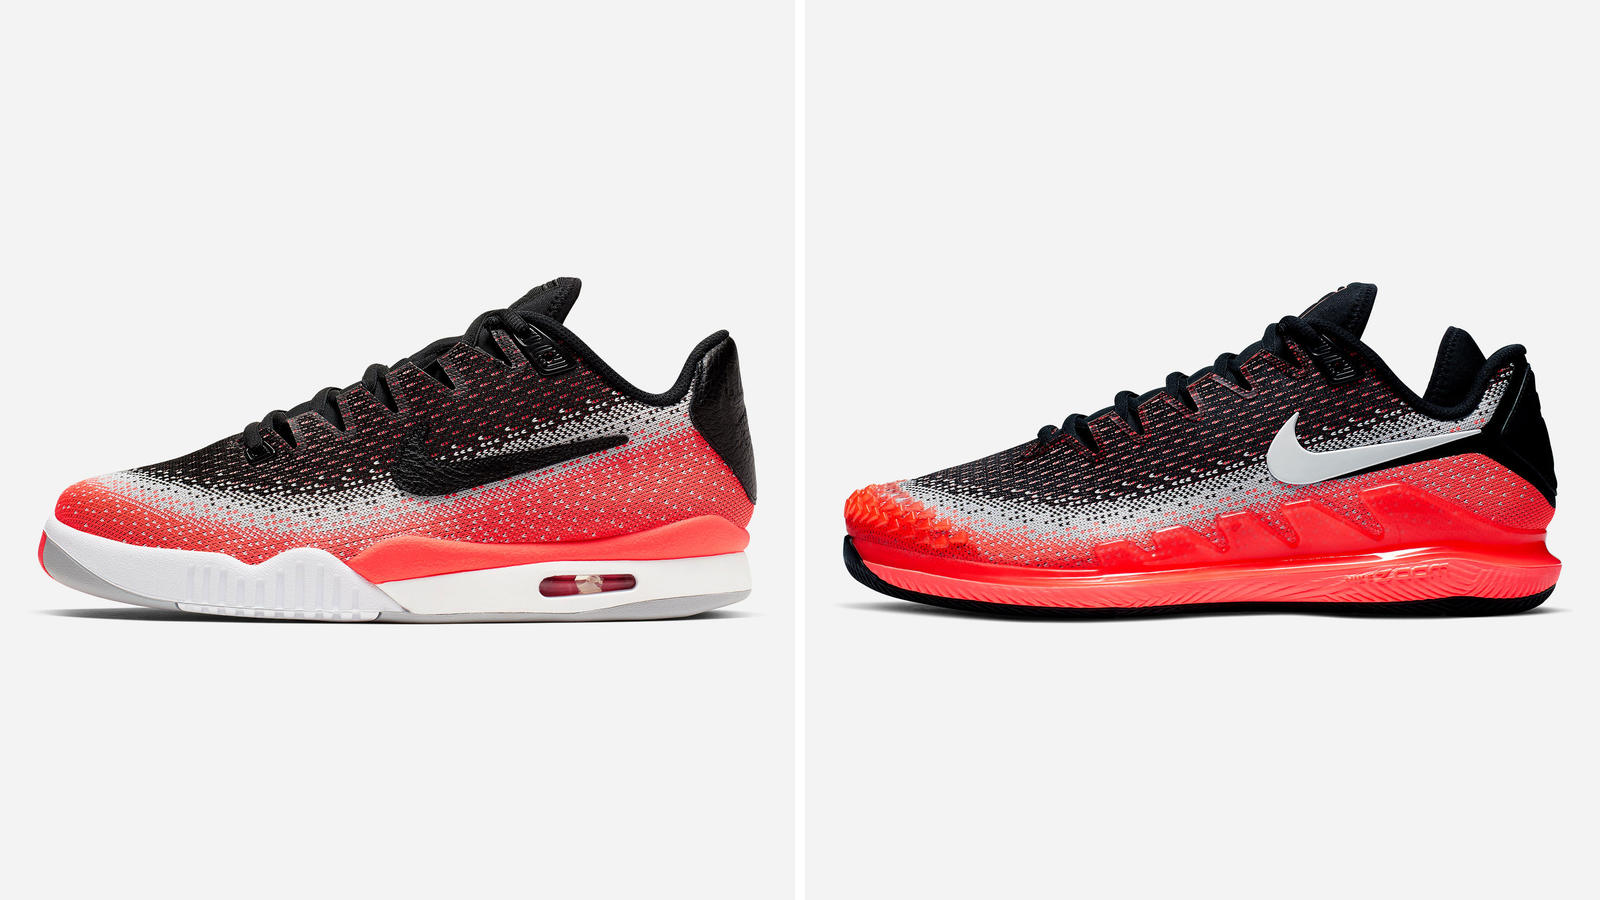 NikeCourt Vapor x TC Knit, NikeCourt Air Zoom Vapor x Knit: Official Images and Release Date 0